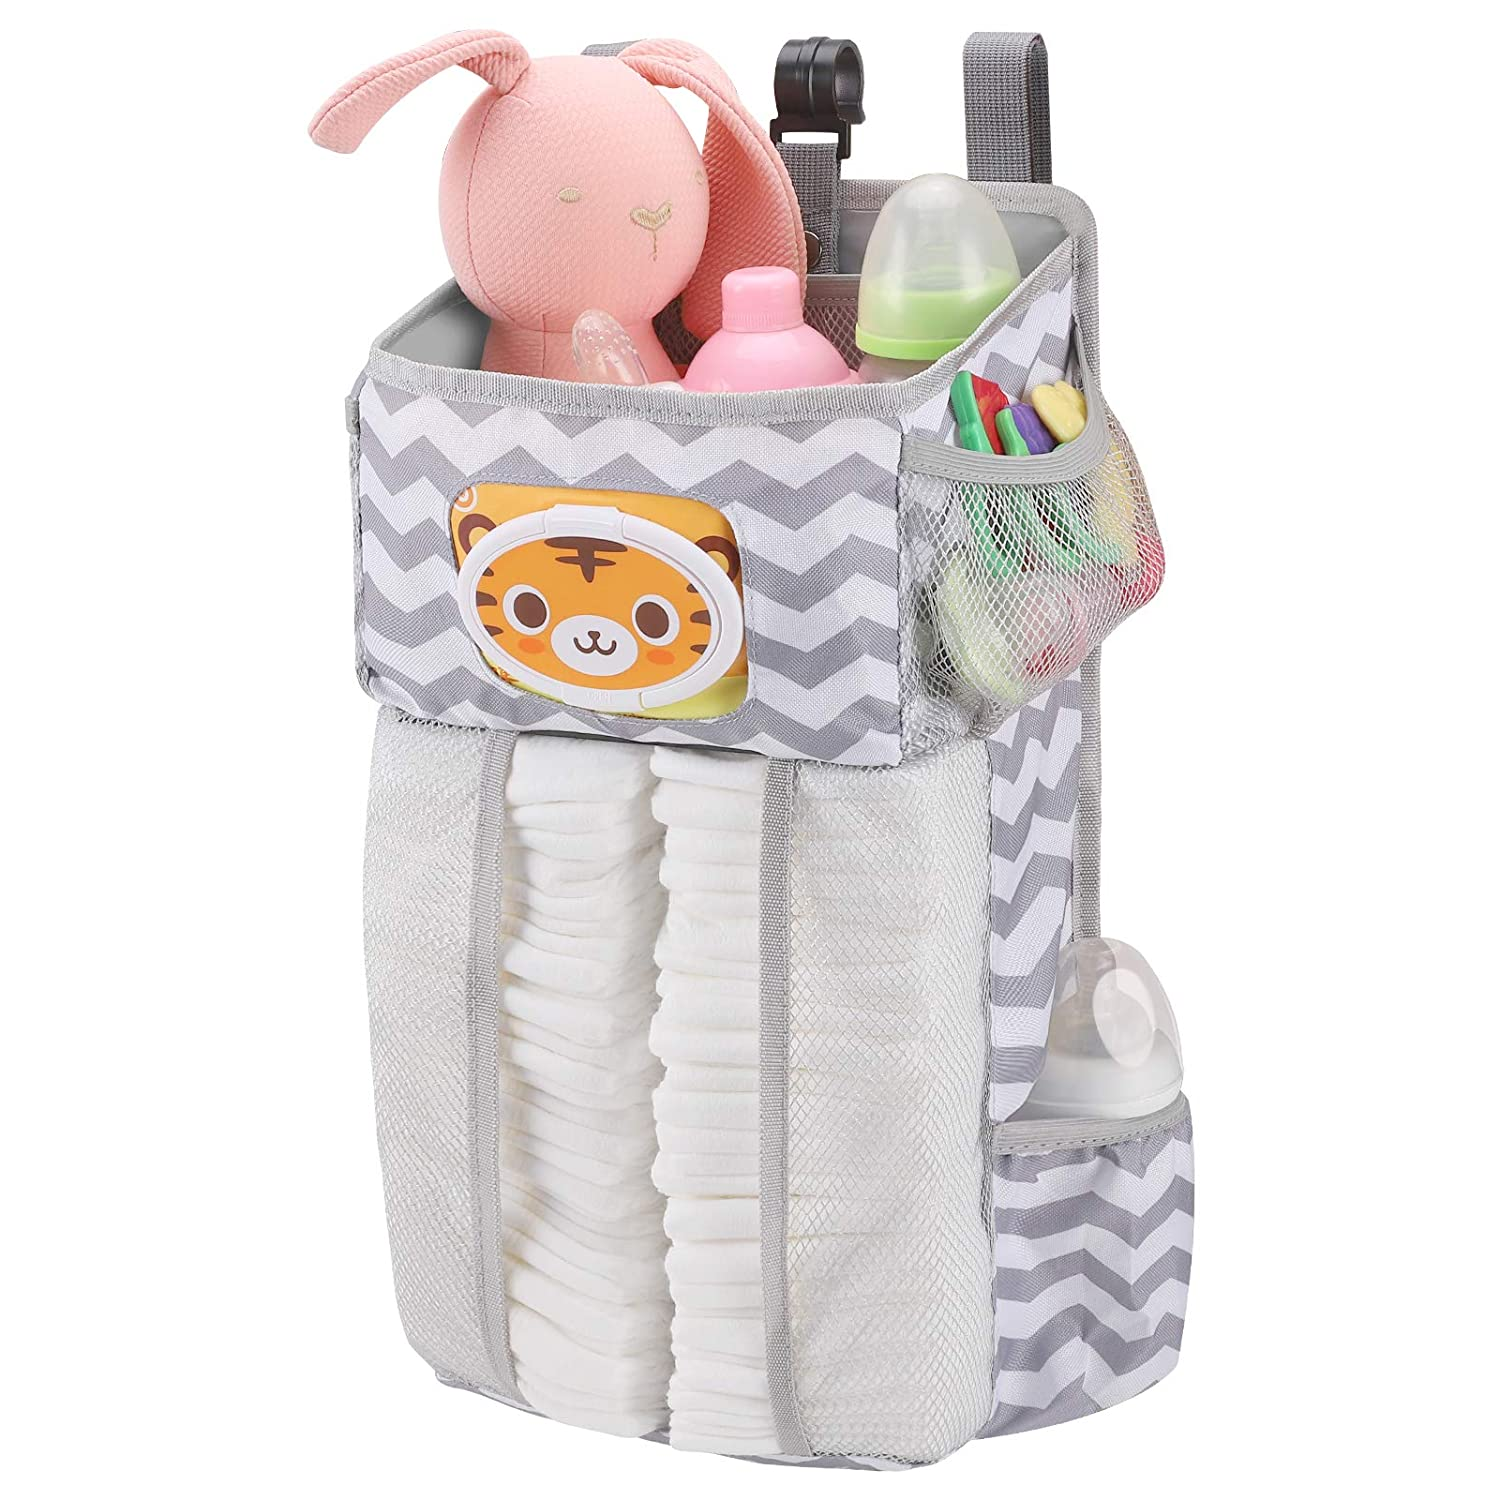 Accmor Hanging Baby Be super welcome Diaper Max 55% OFF Caddy Paper with Di Organizer Pocket